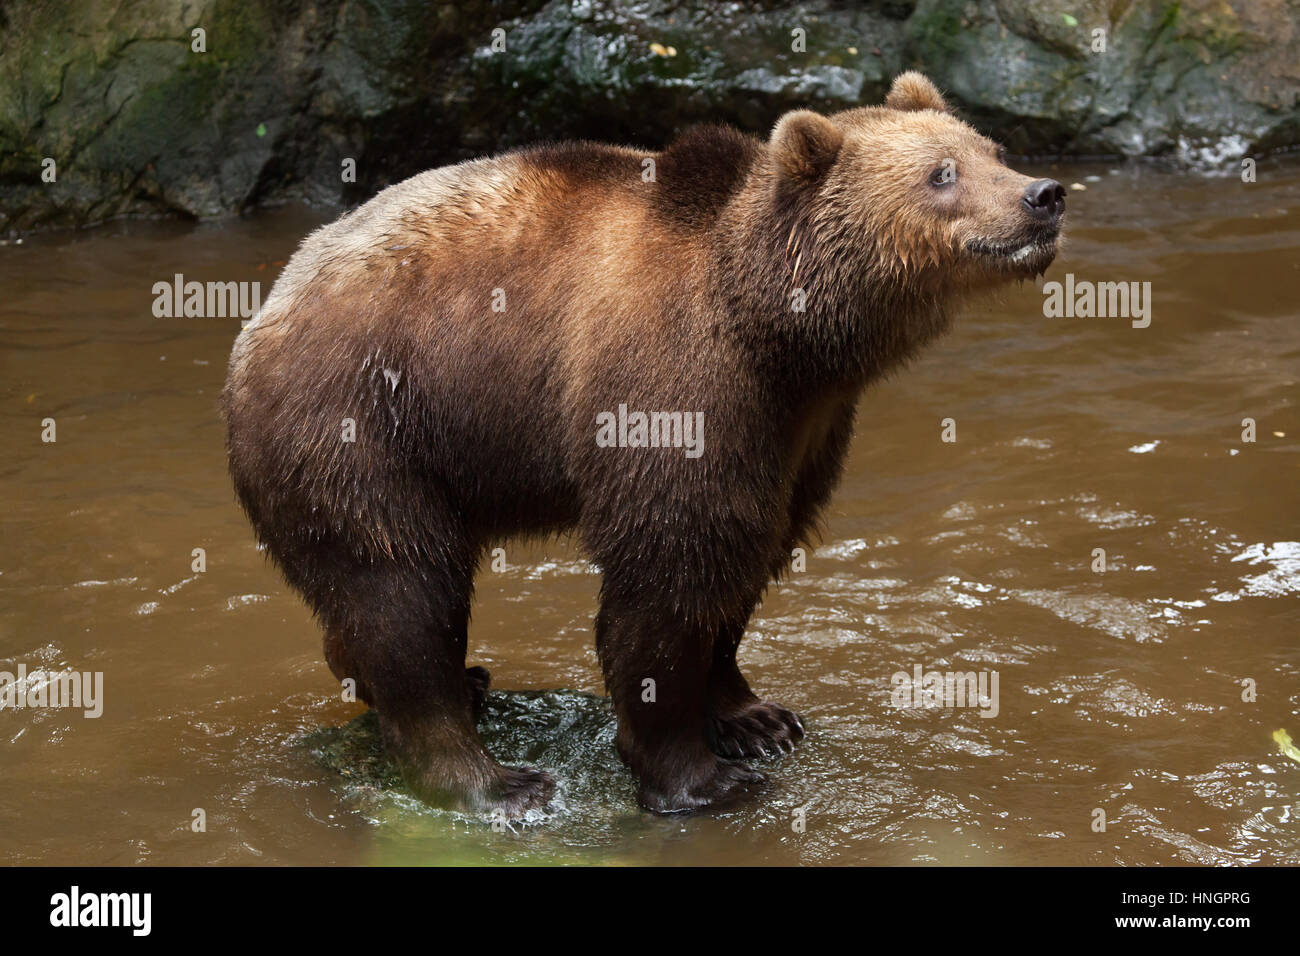 Kamchatka brown bear (Ursus arctos beringianus), also known as the Far Eastern brown bear at La Fleche Zoo in the - Stock Image